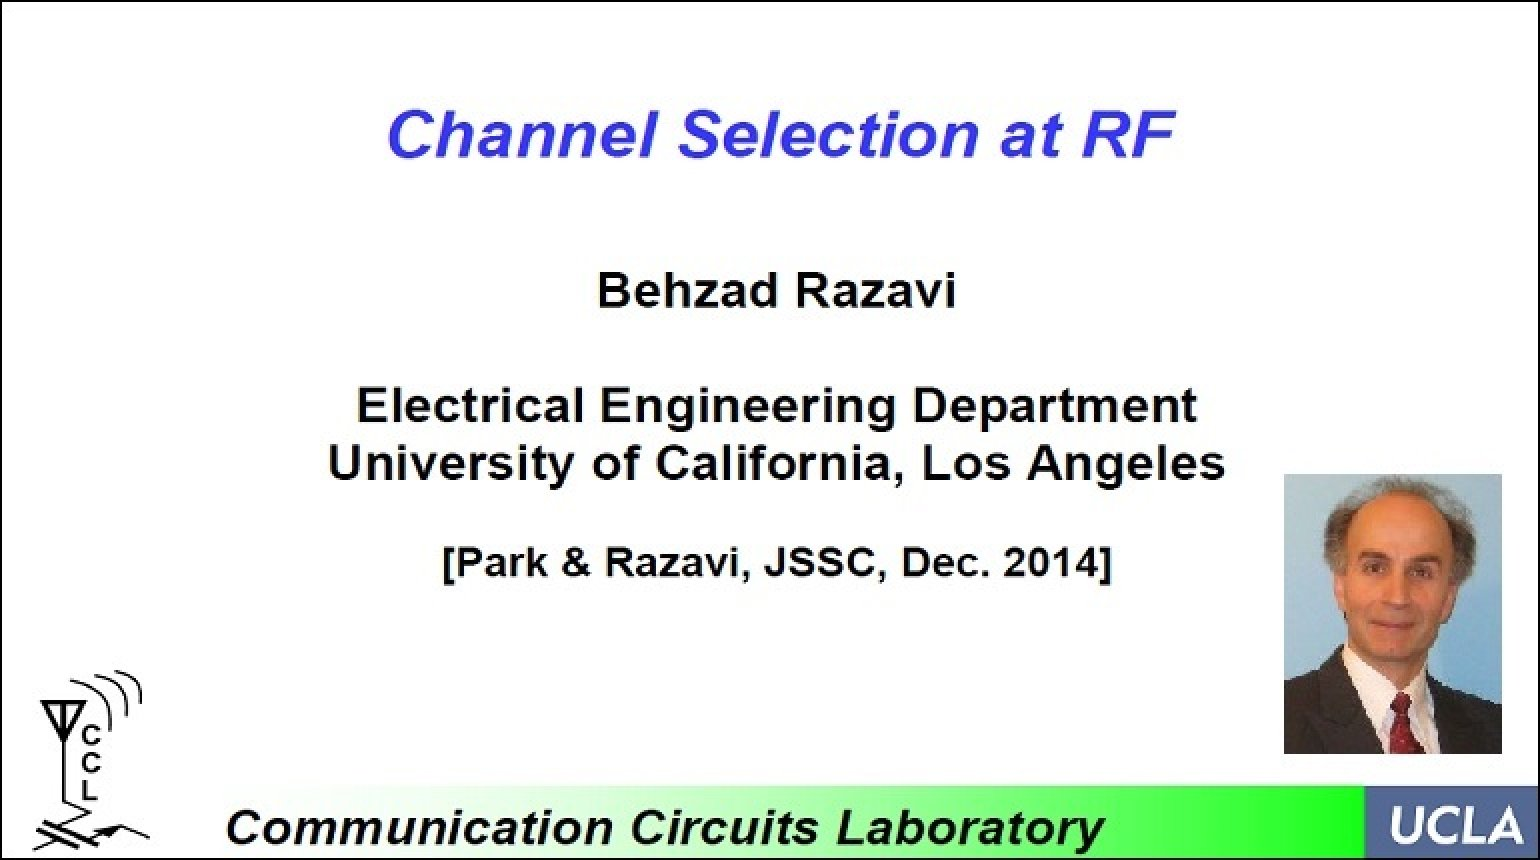 Channel Selection at RF Video